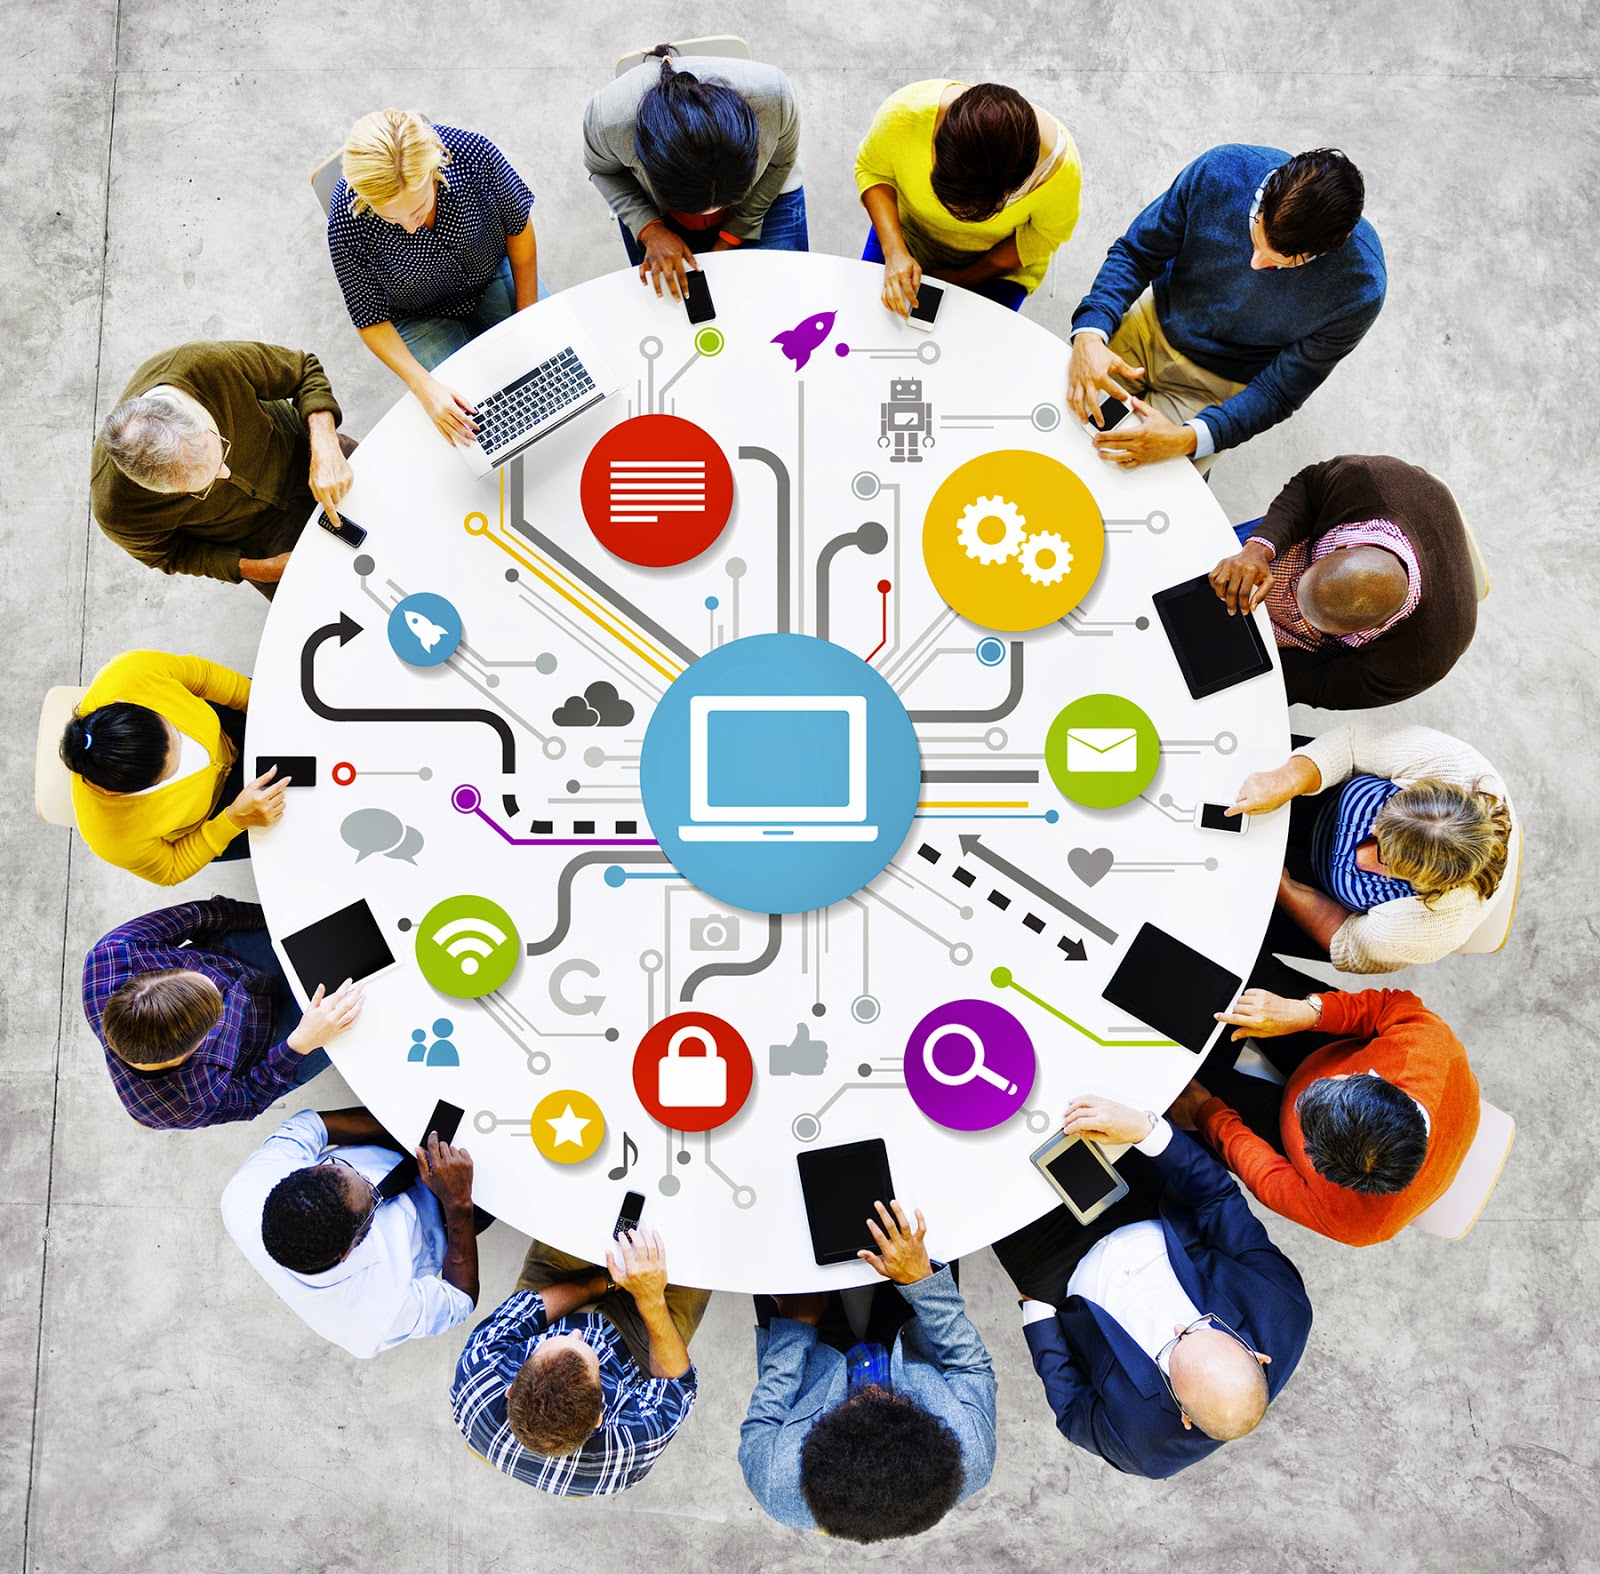 Image of a group of people sitting around the table with networking icons interconnecting them.